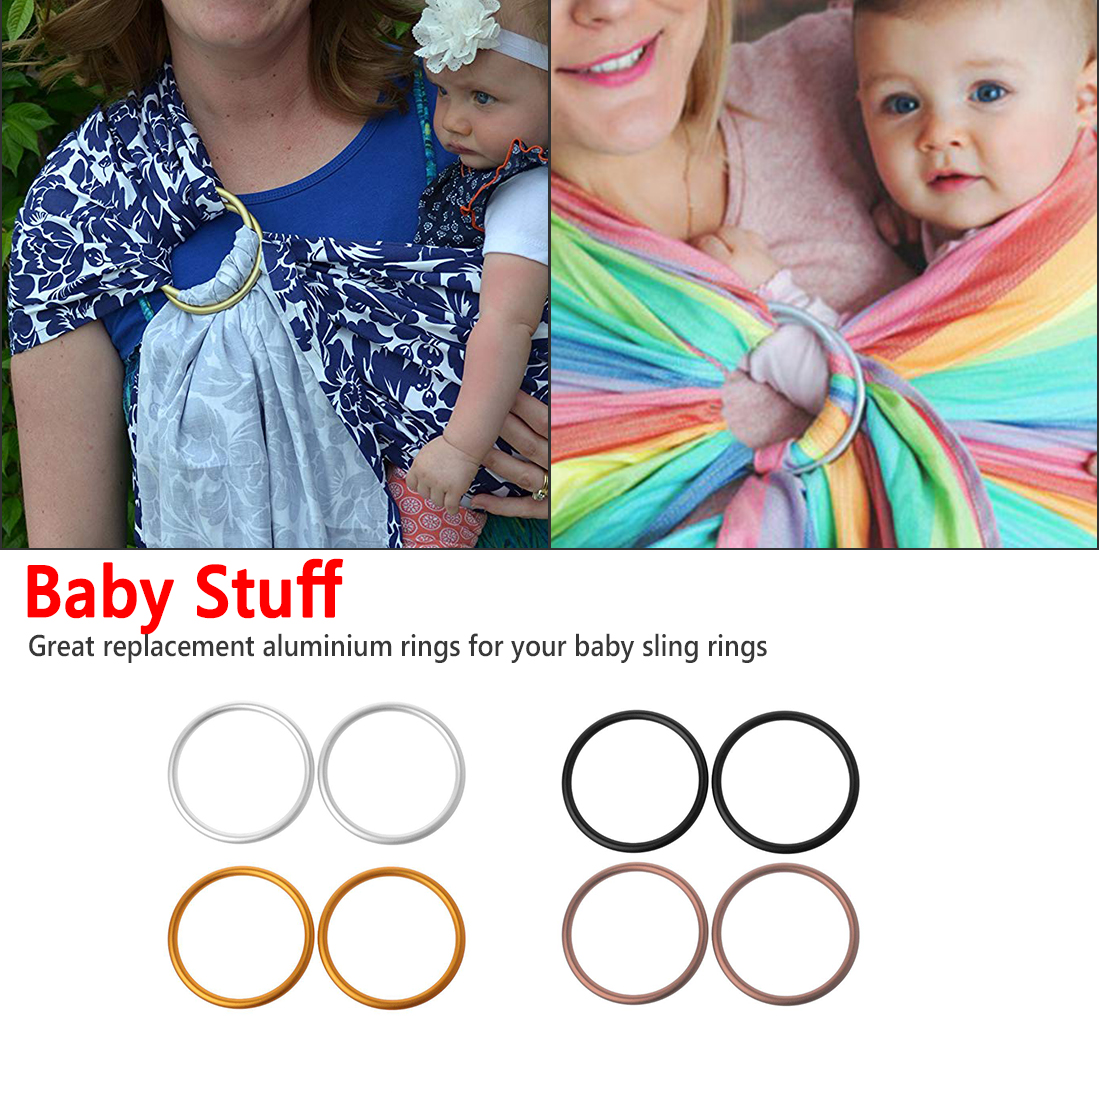 Premium Aluminum Rings For Baby Slings Baby Carriers Accessories 4 Colors For Baby Carriers & Slings